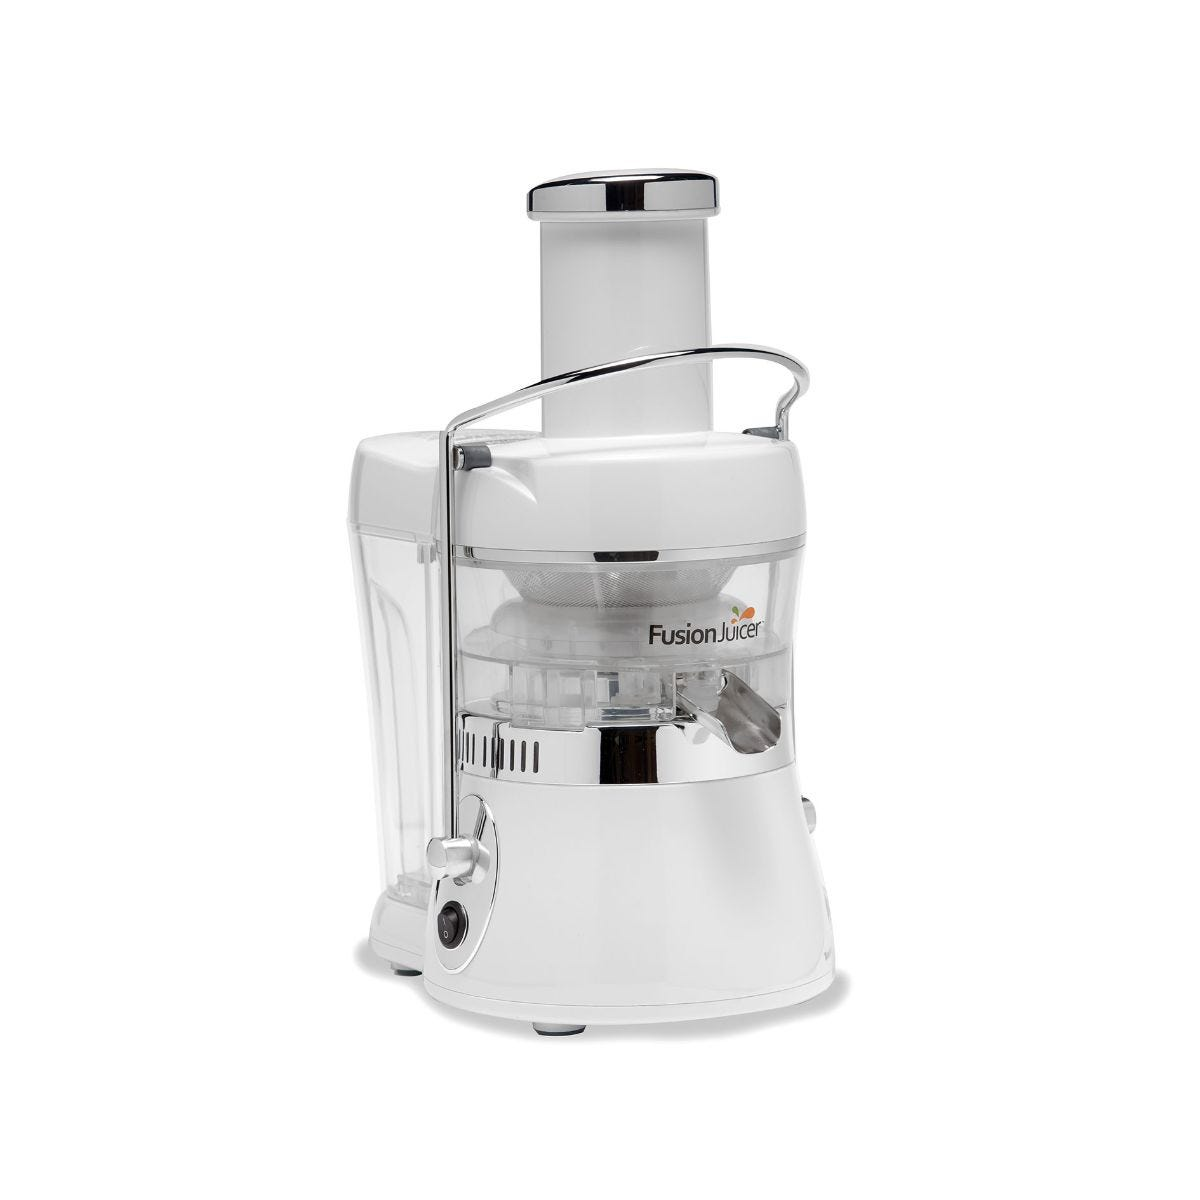 Image of Fusion Juicer from Jason Vale, White